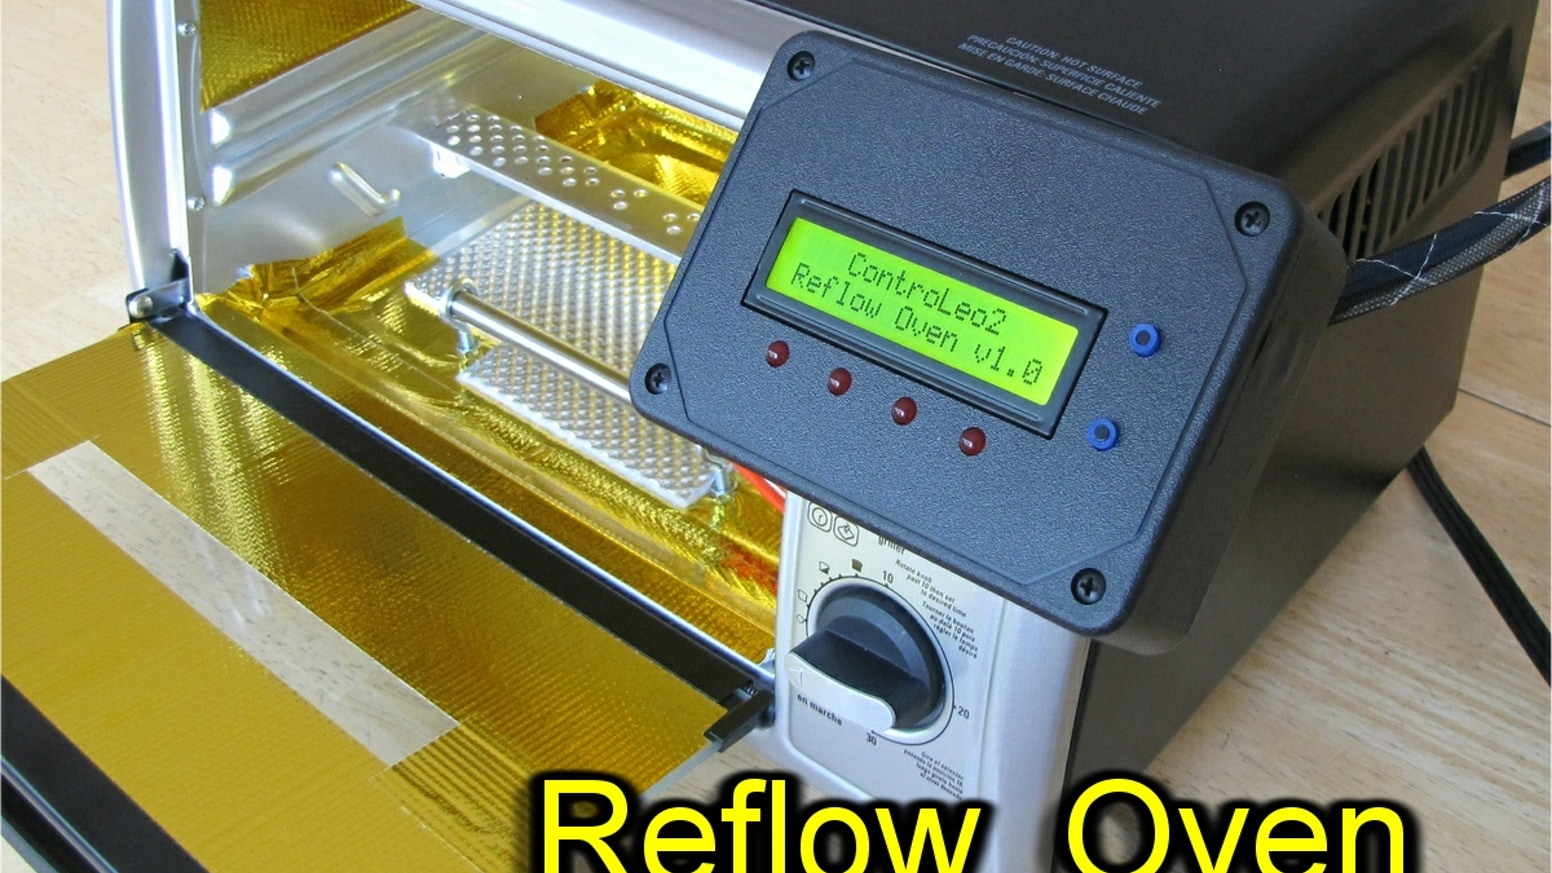 Controleo2 Reflow Oven By Peter Easton Kickstarter Homebuilt Solid State Relay Circuit Board Component Layout Low Cost High Quality For Surface Mount Pcb Assembly At Home